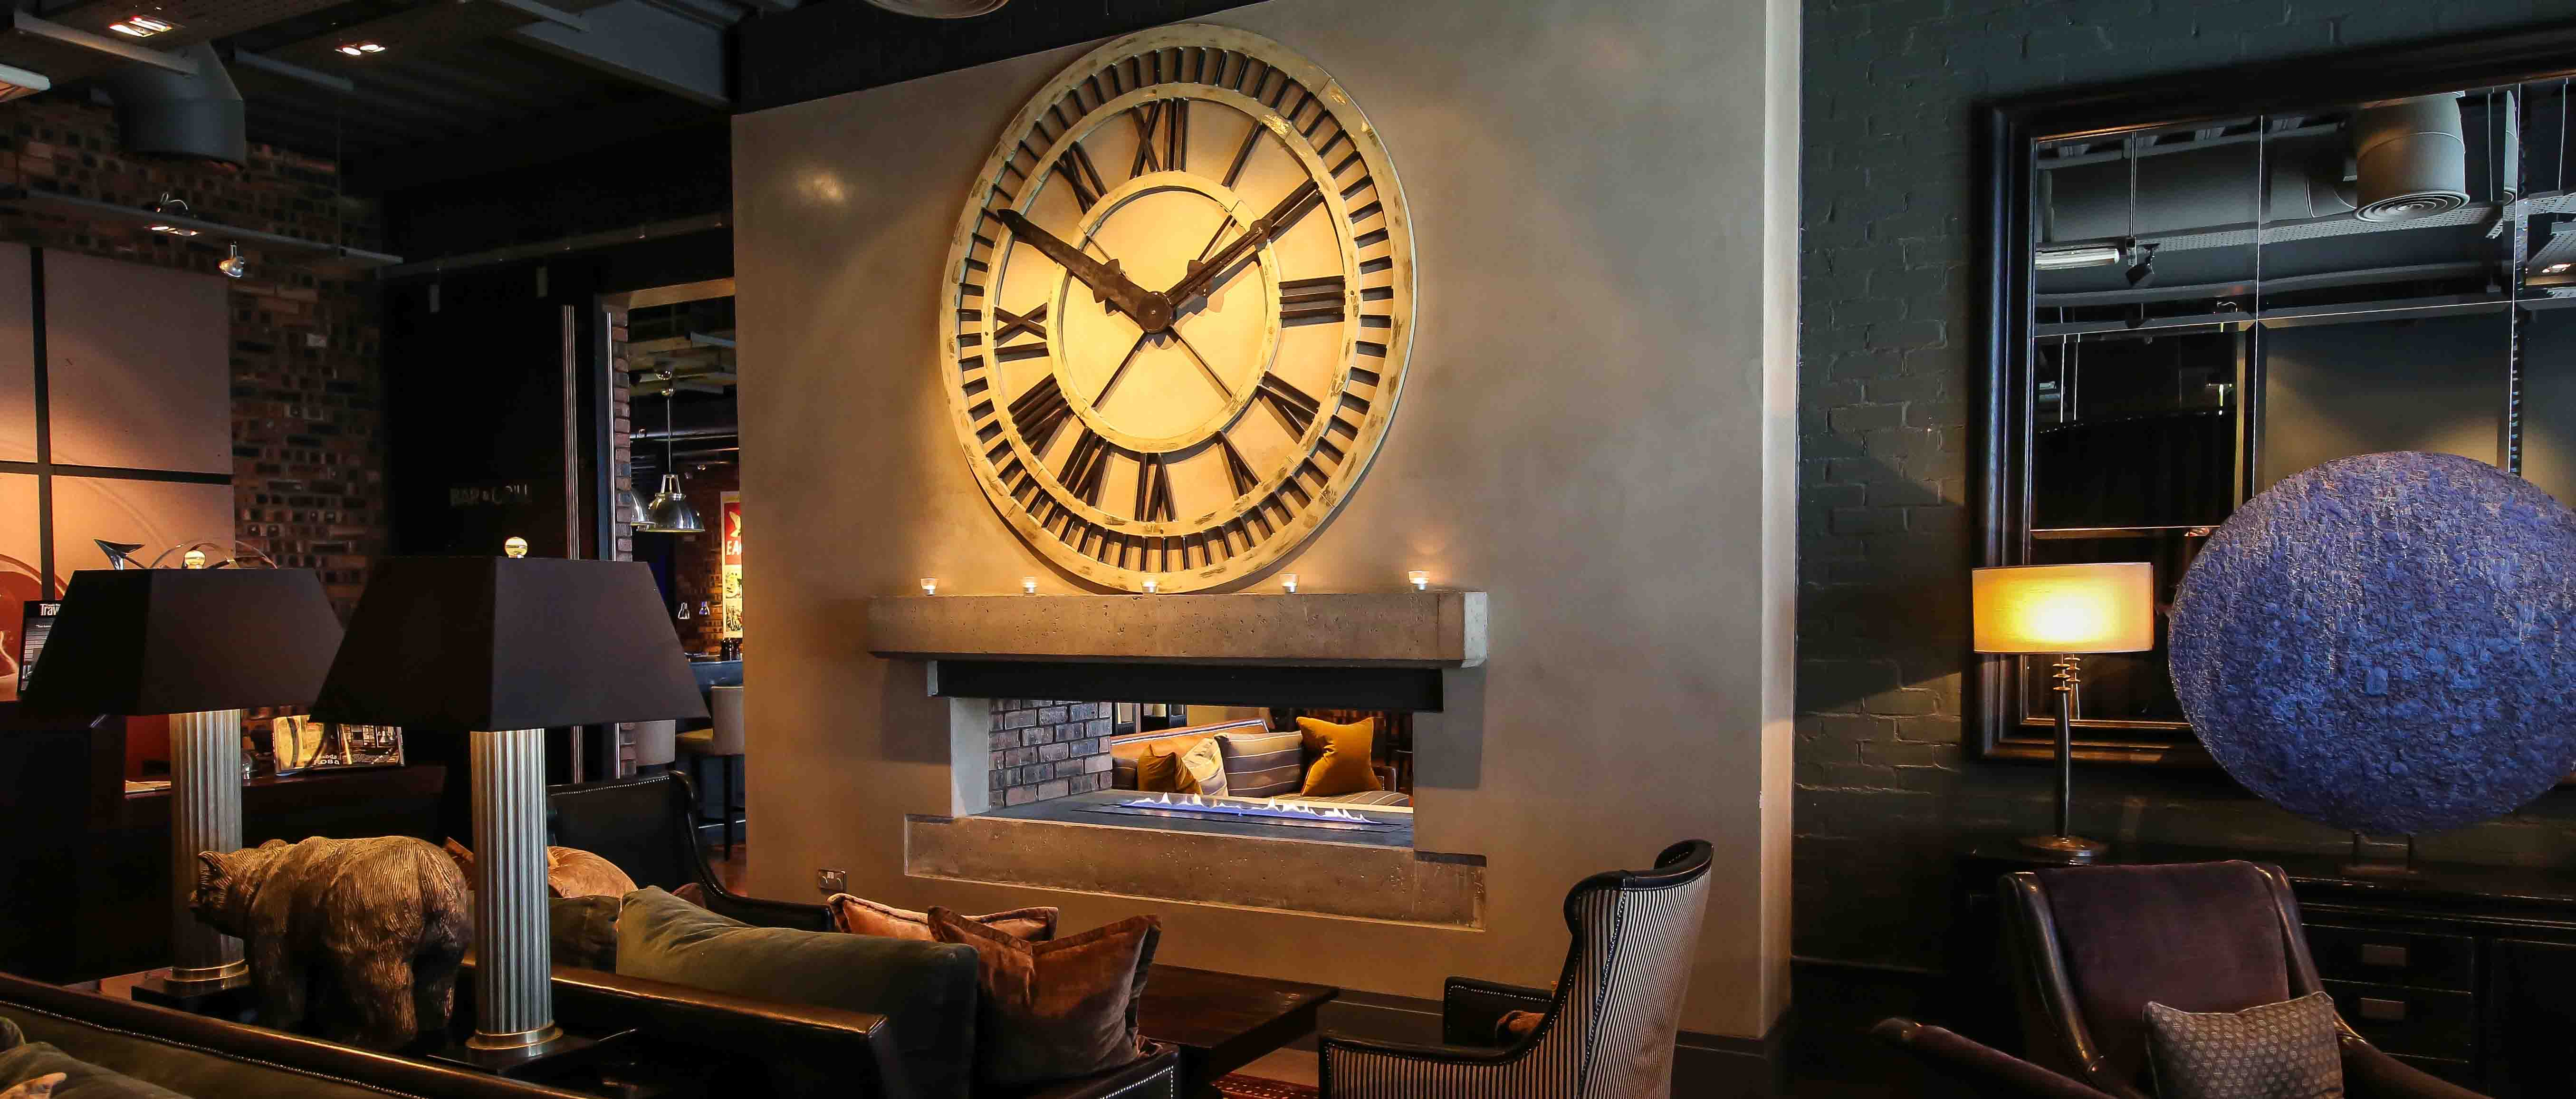 Large clock above fireplace at Dakota Hotels